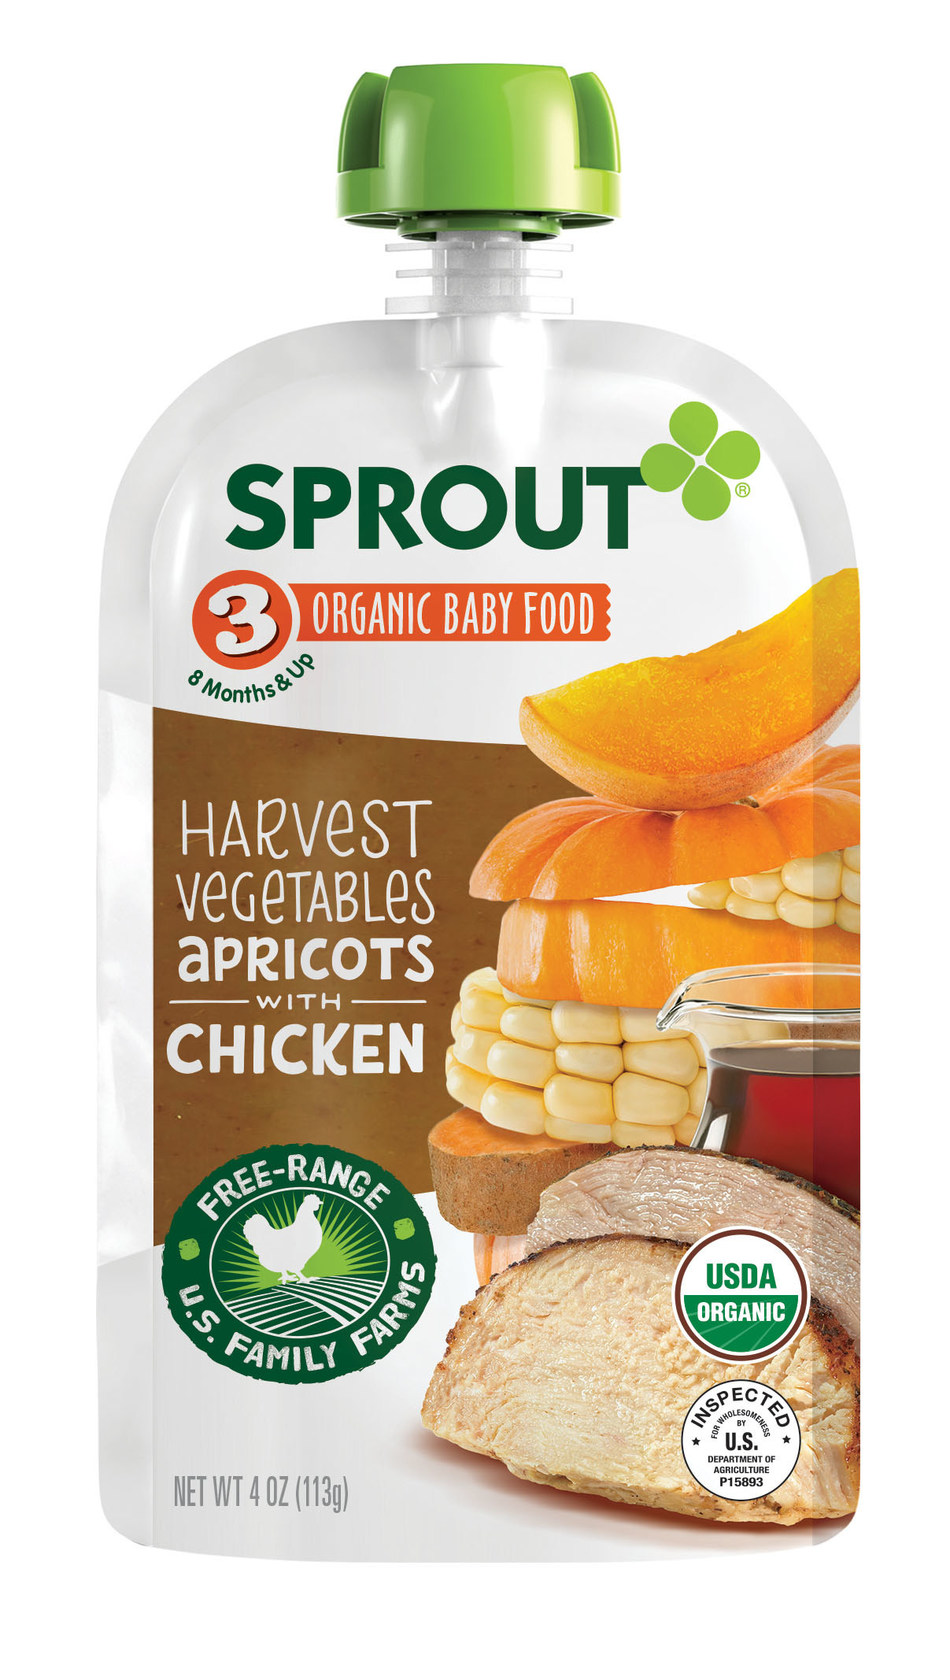 Harvest Vegetables Apricots with Chicken organic baby food pouch from Sprout Foods